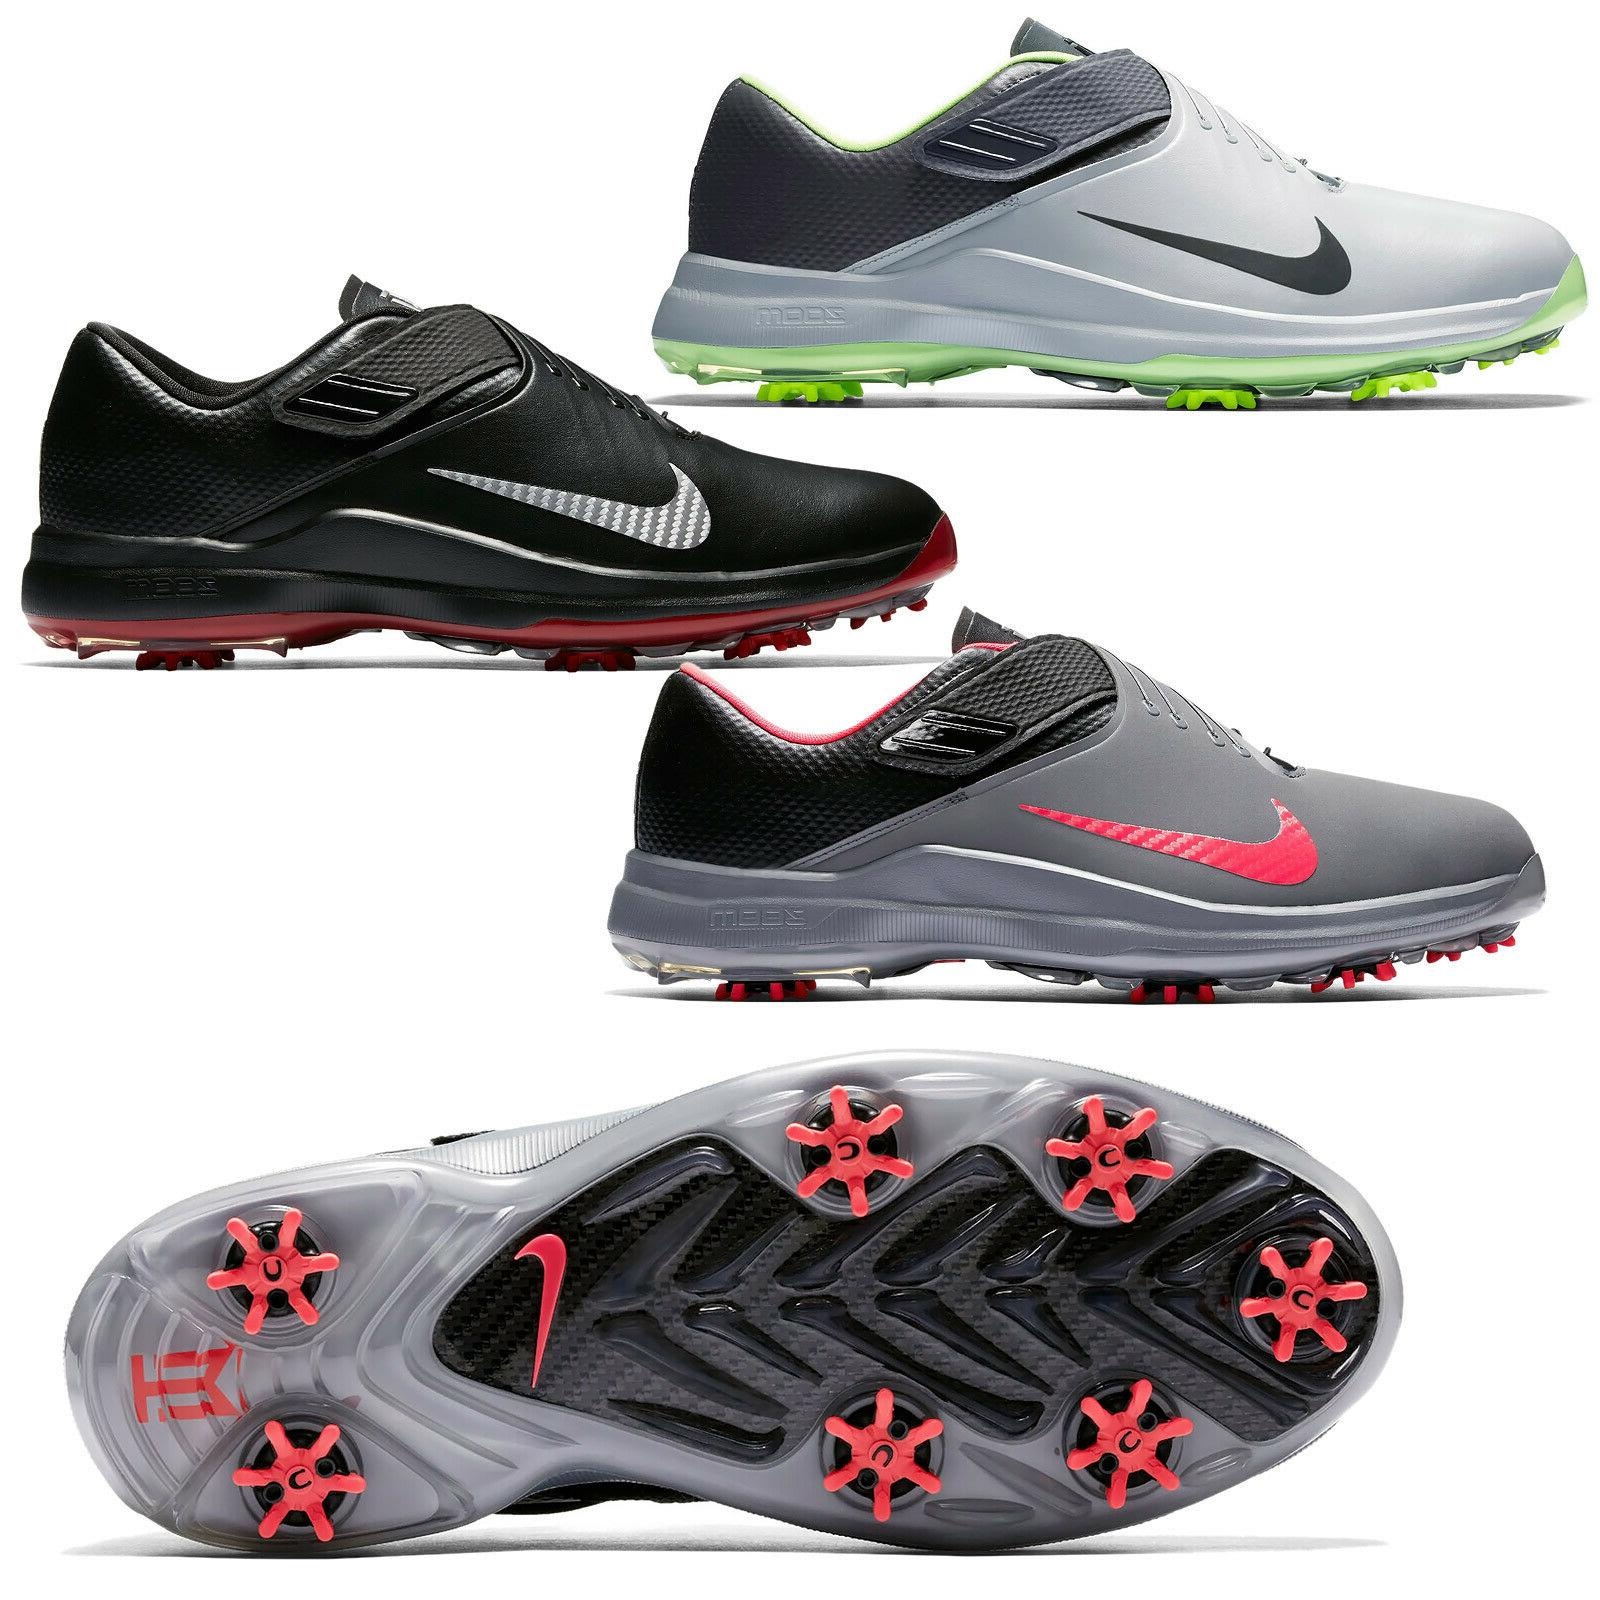 new golf mens tw 17 tiger woods